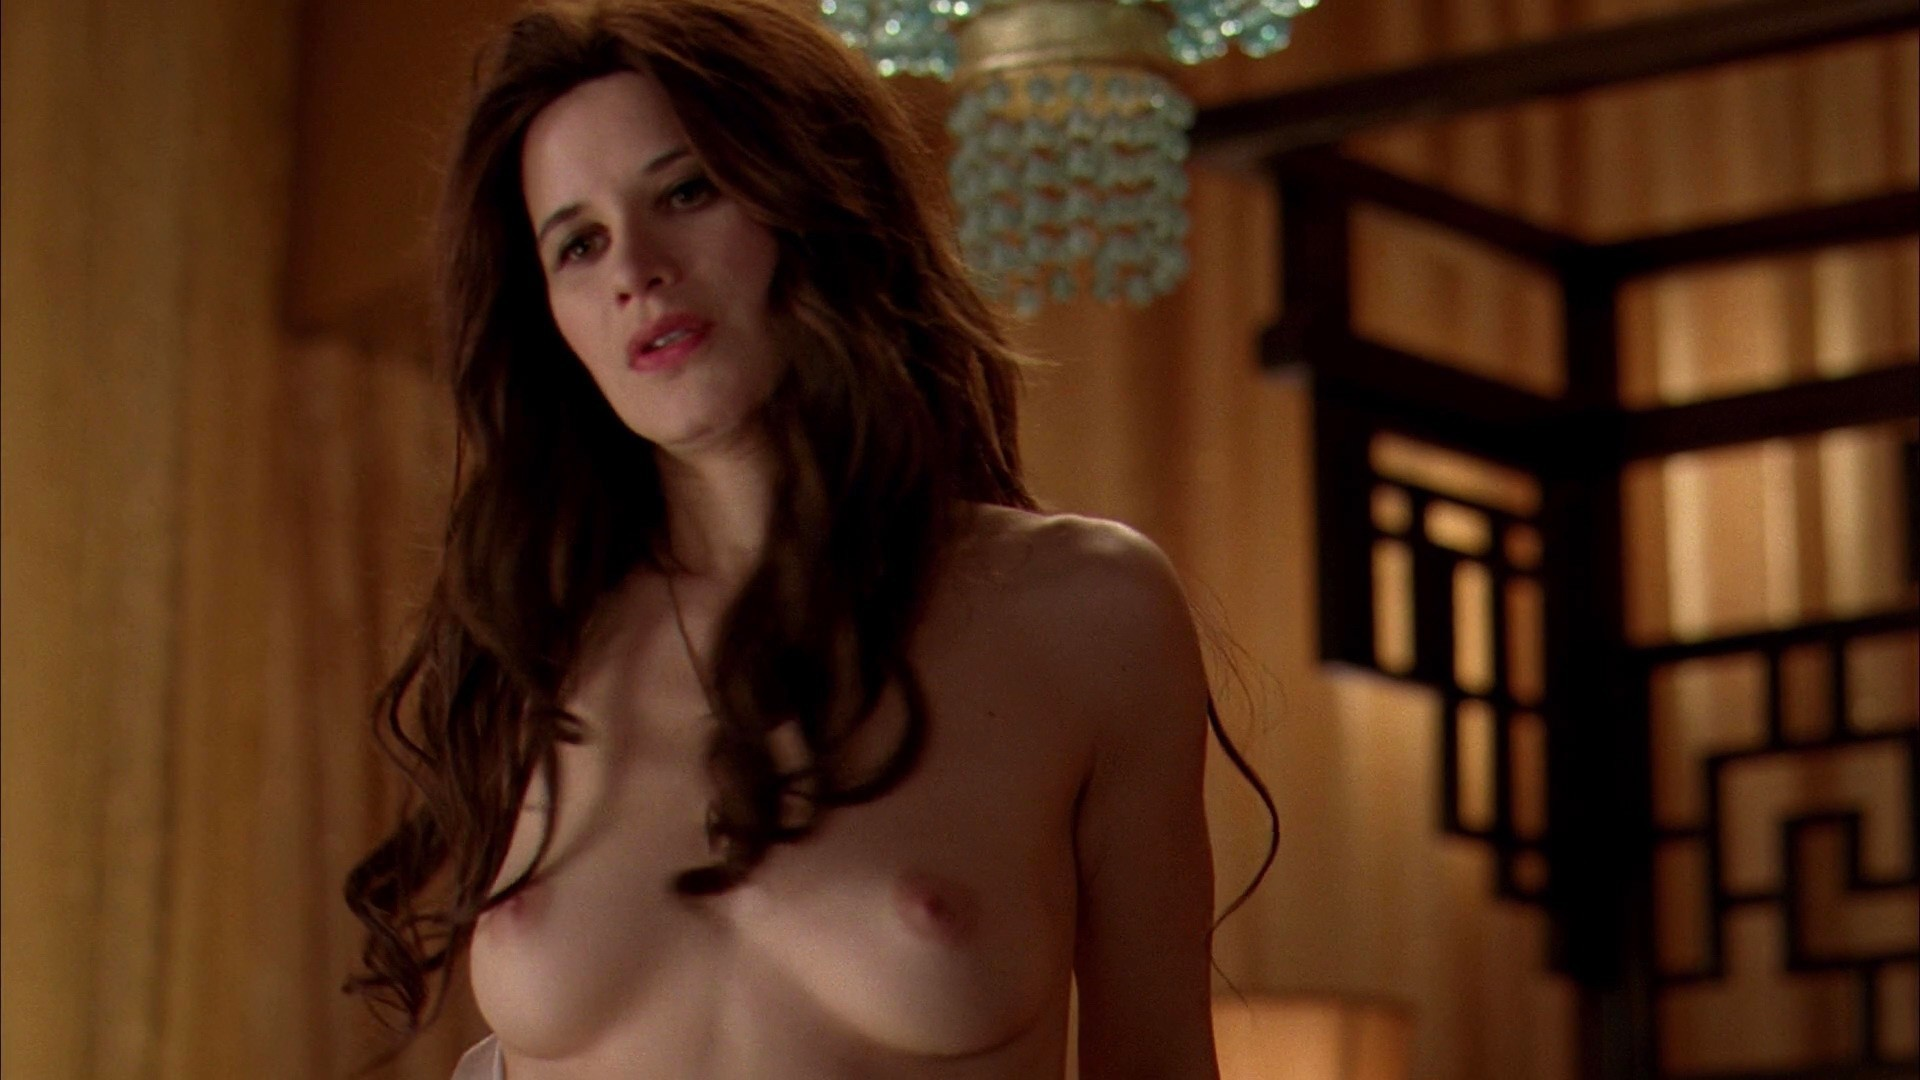 Hollywood actresses sex scenes